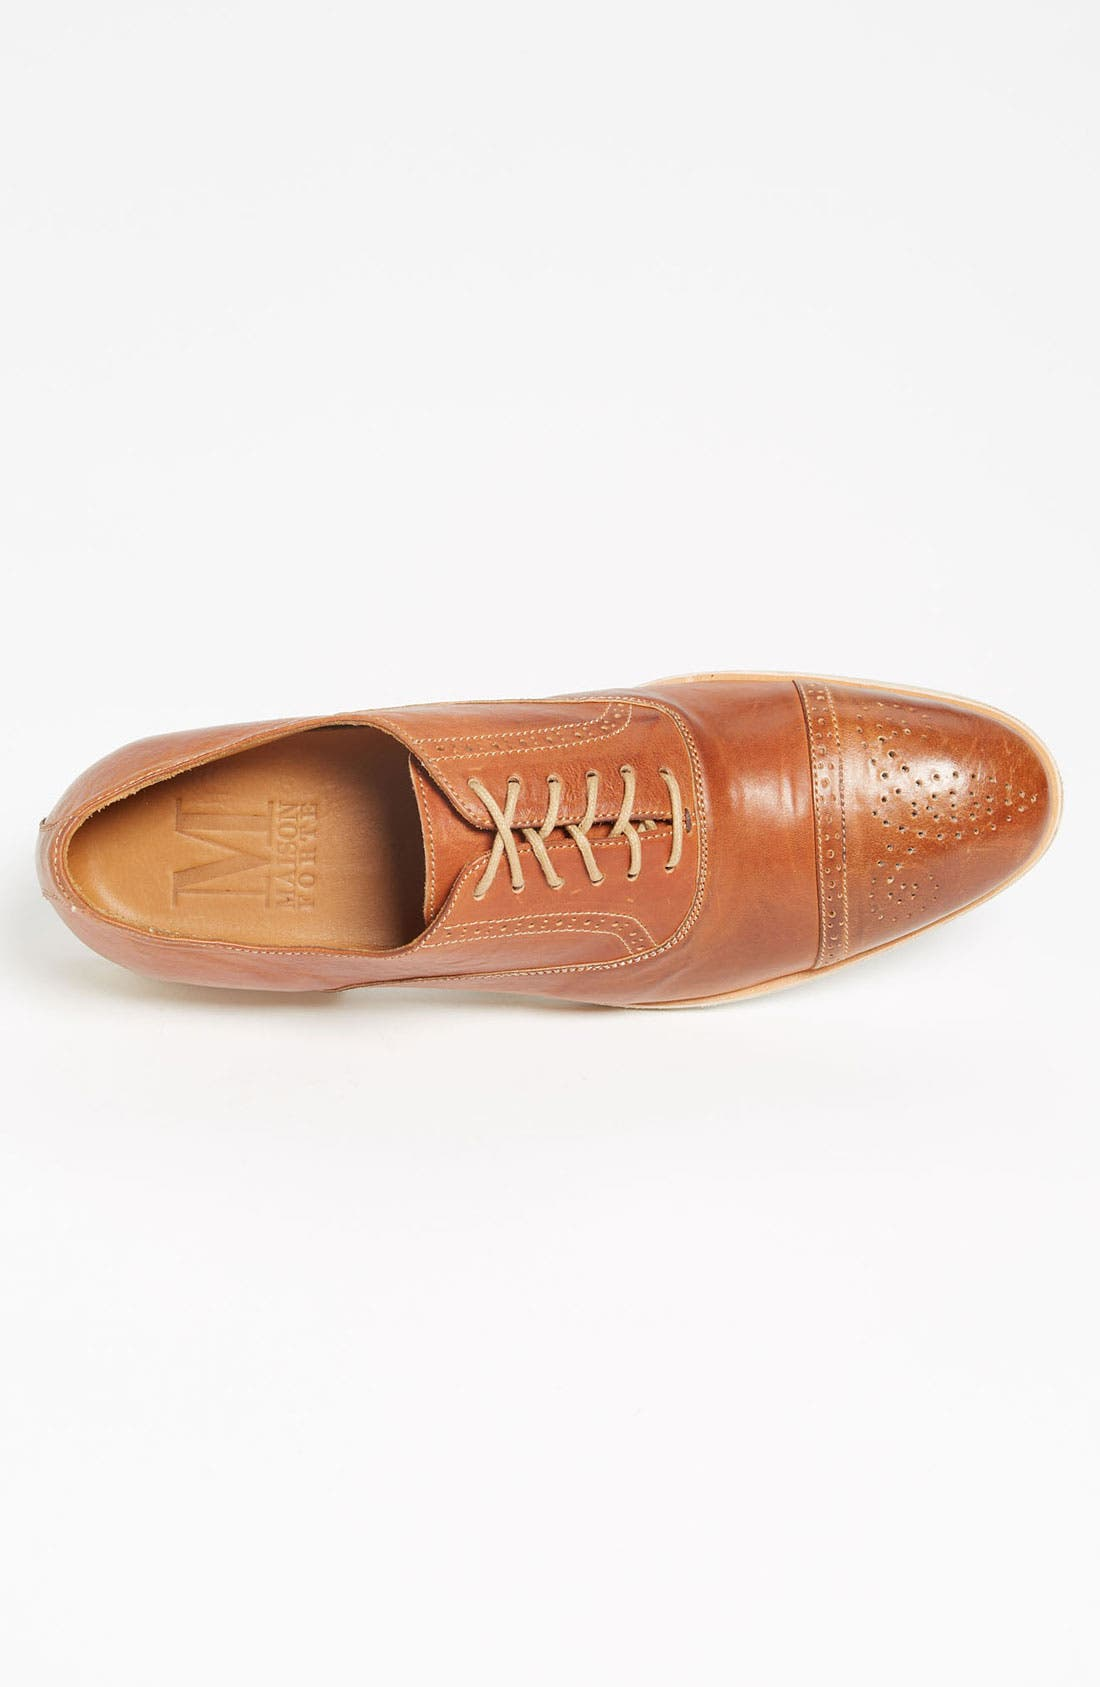 Alternate Image 3  - Maison Forte 'Hyeres' Cap Toe Oxford